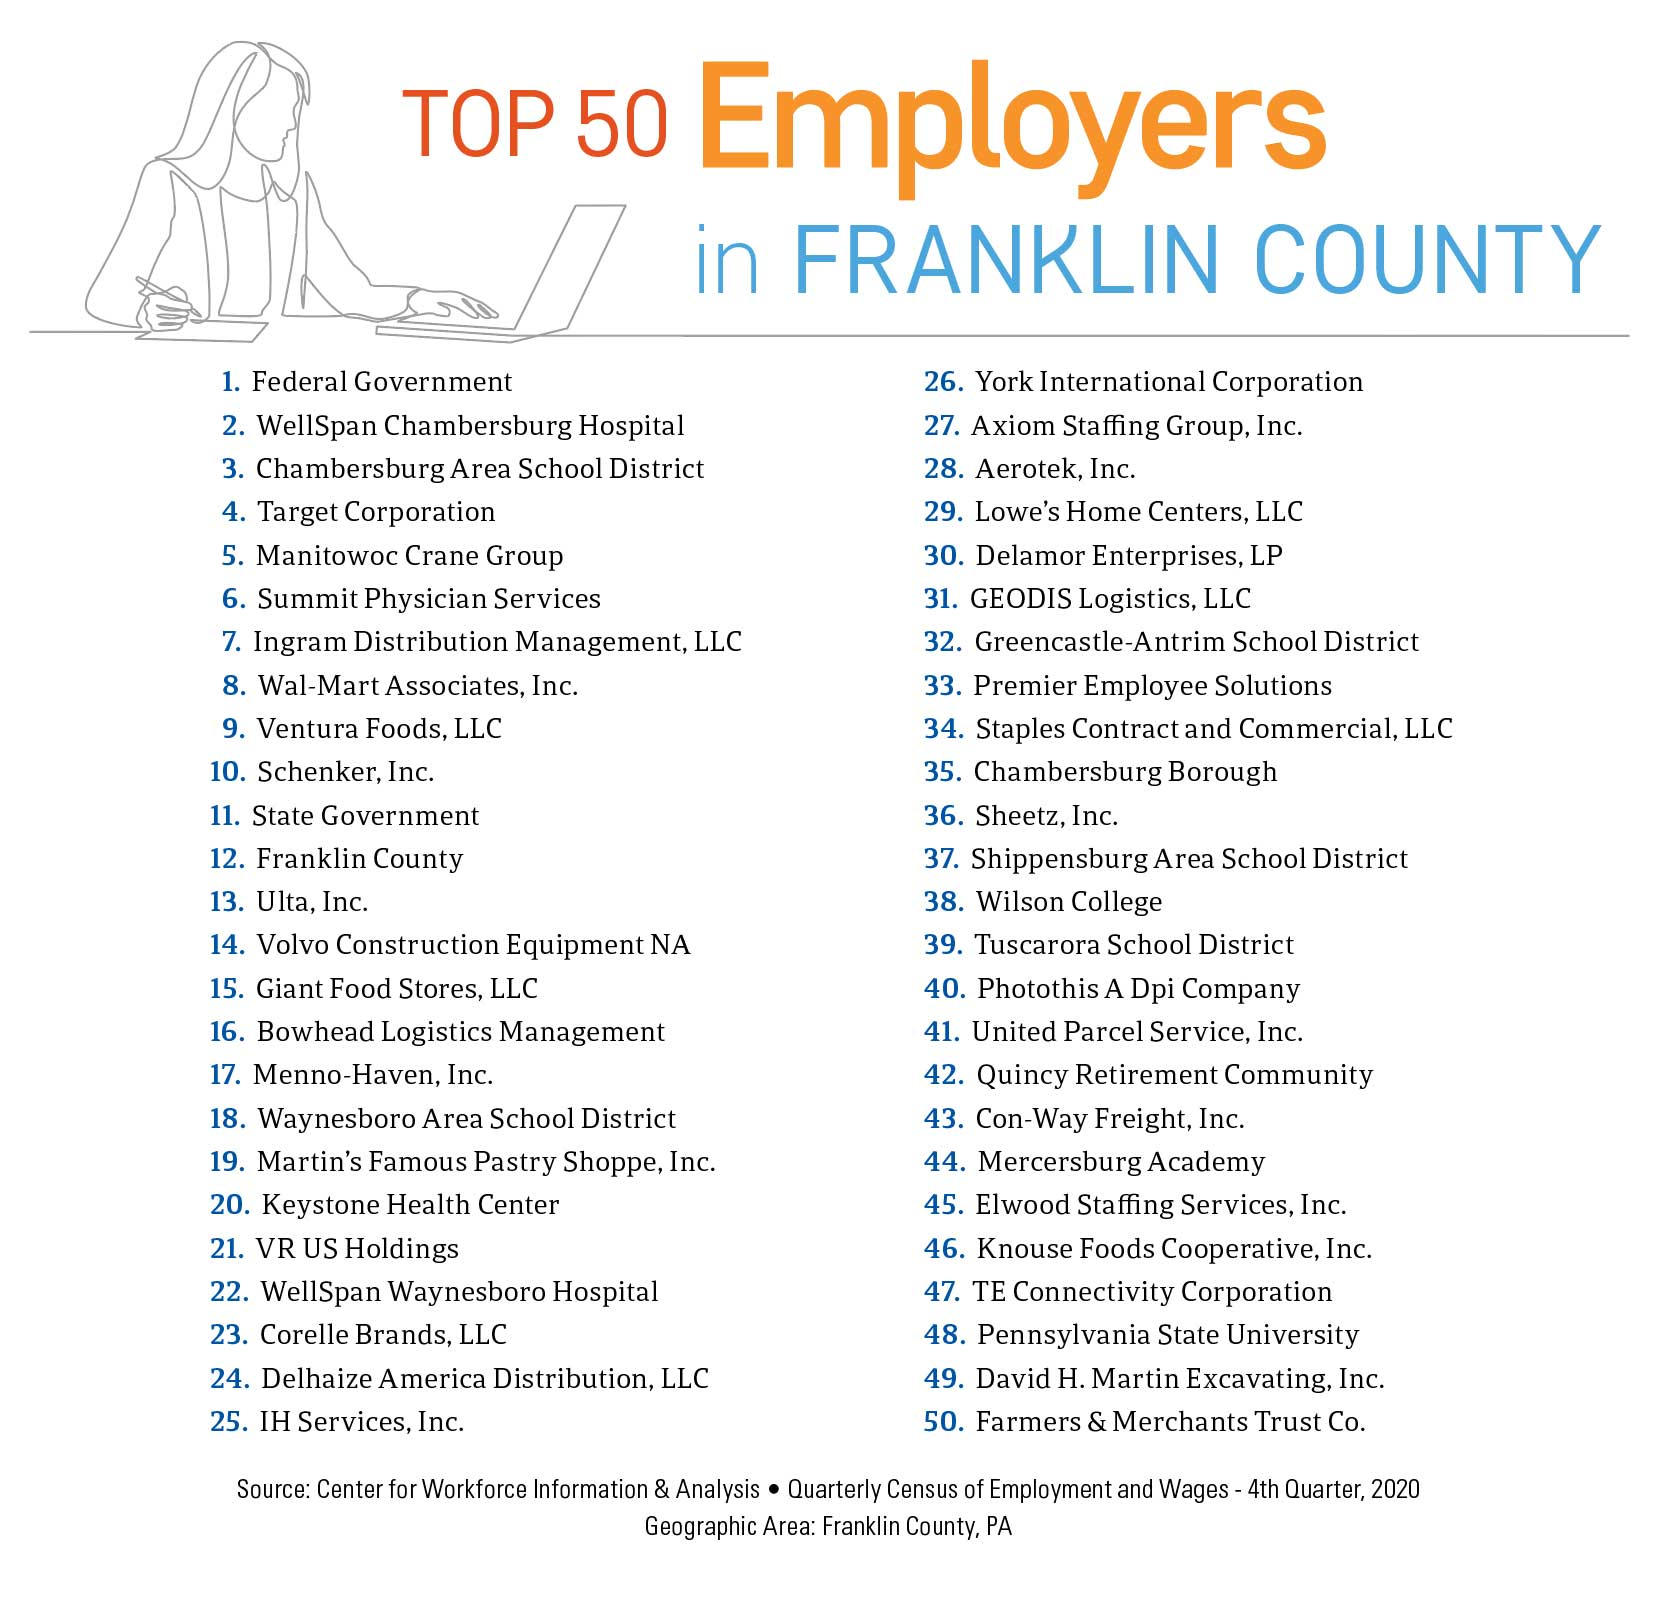 Top 50 Employers in Franklin County